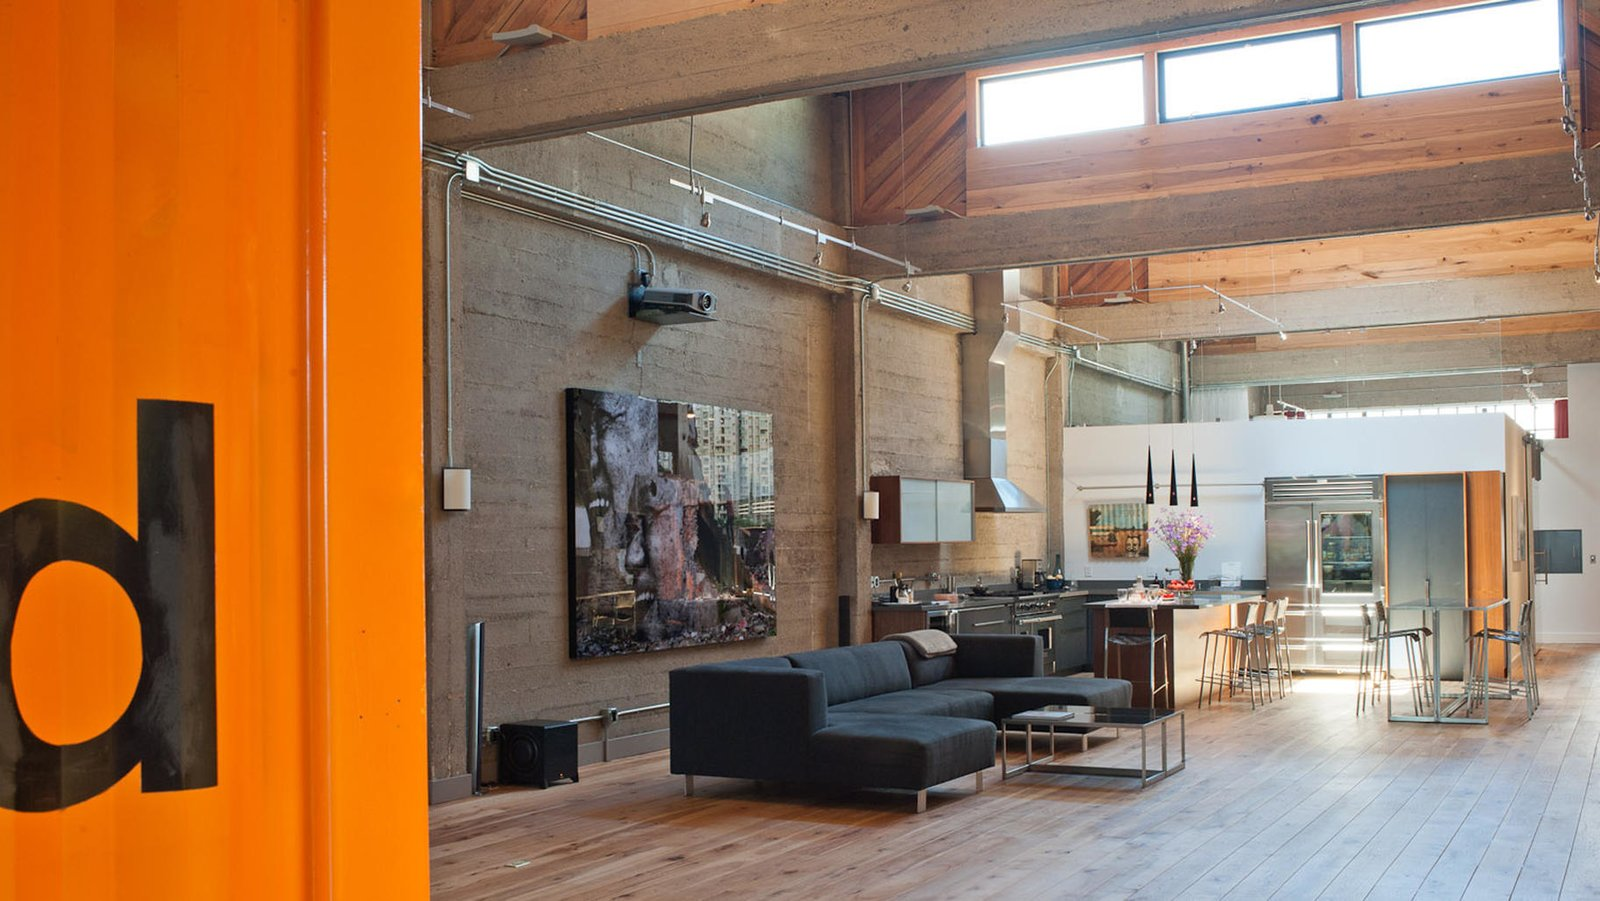 #lundberg #lundbergdesign #sanfrancisco #windows #glass #concrete #warehouse #interior #livingroom #hardwoodfloors #flooring #kitchen   20+ Modern Warehouse and Garages Conversions by Zachary Edelson from Wardell Sagan Residence